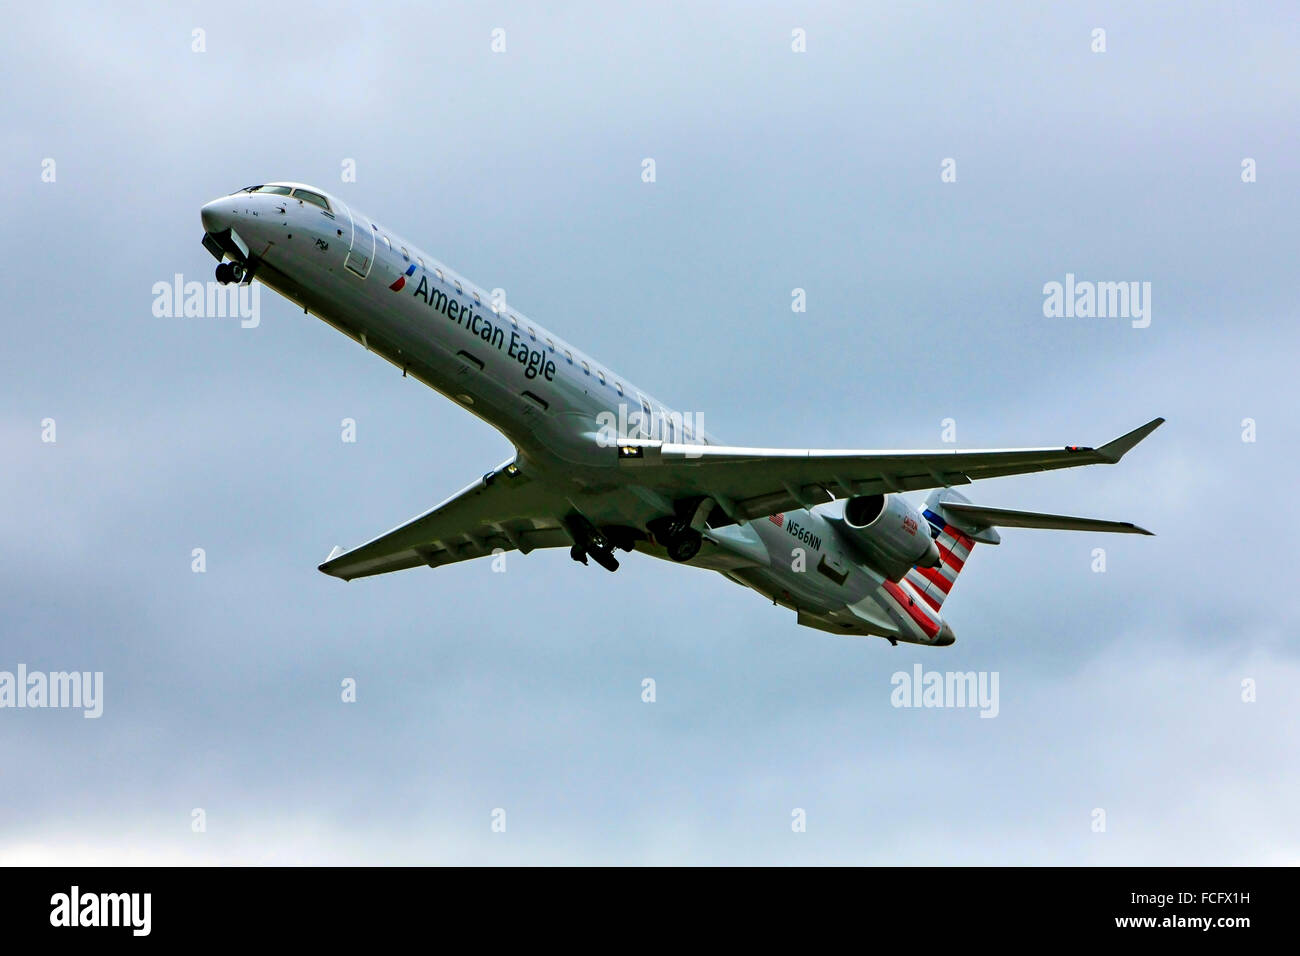 Canadair CL-600-2D24 commercial jet passenger plane of American Airlines departs Sarasota airport for CLT Charlotte - Stock Image